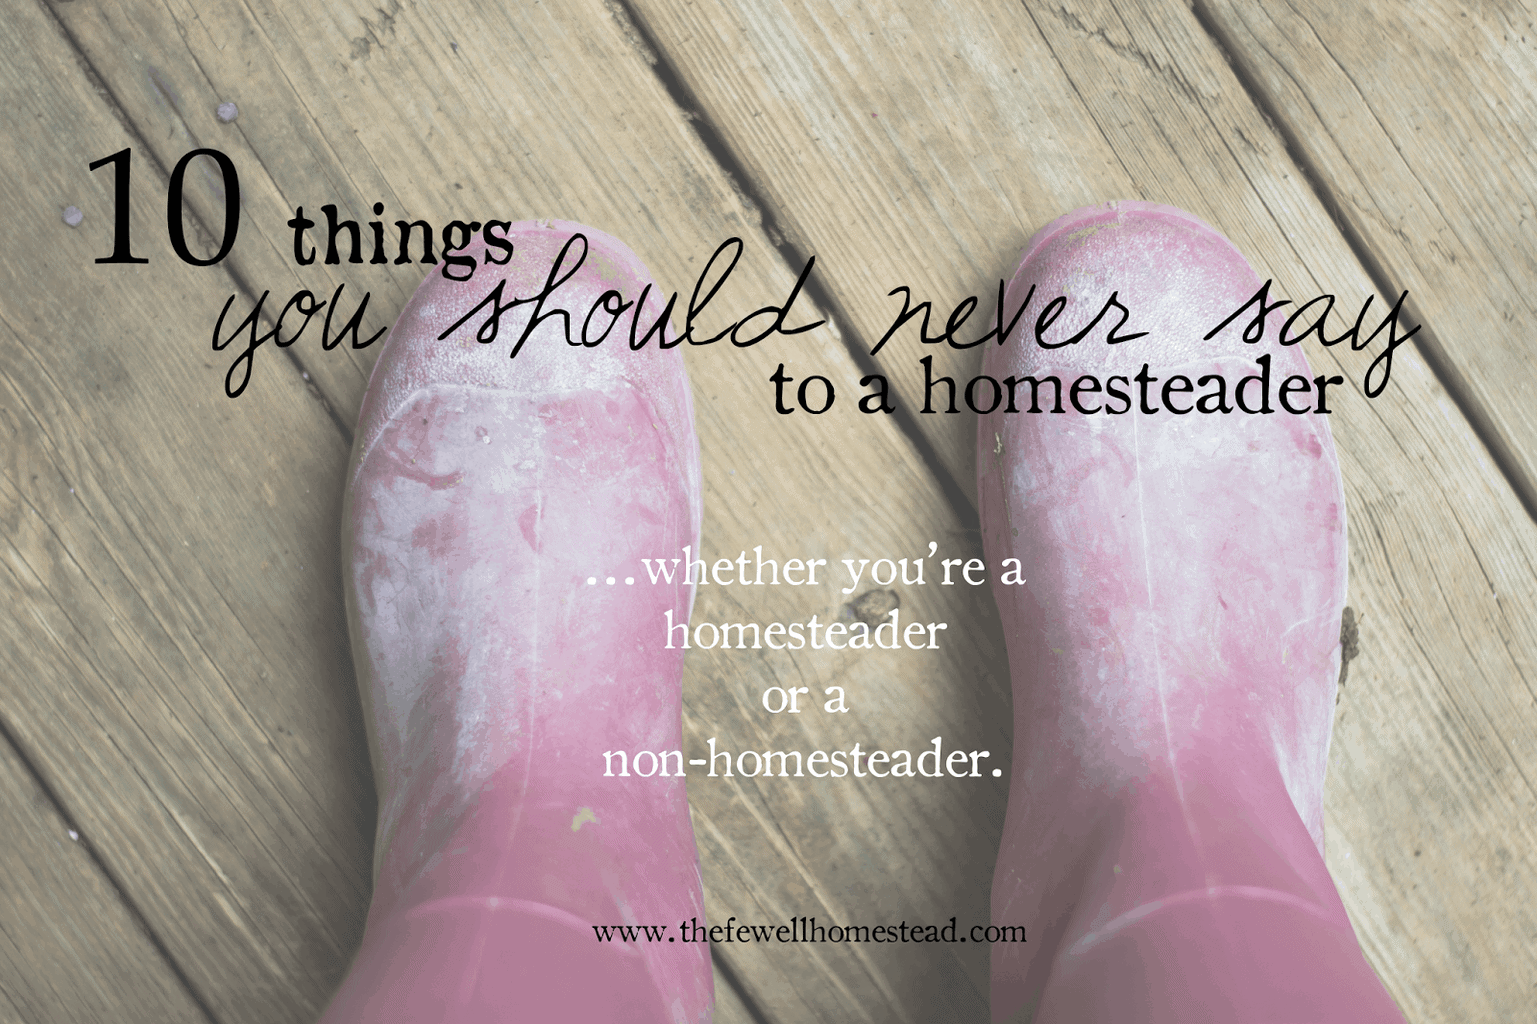 10 Things You Should Never Say to a Homesteader